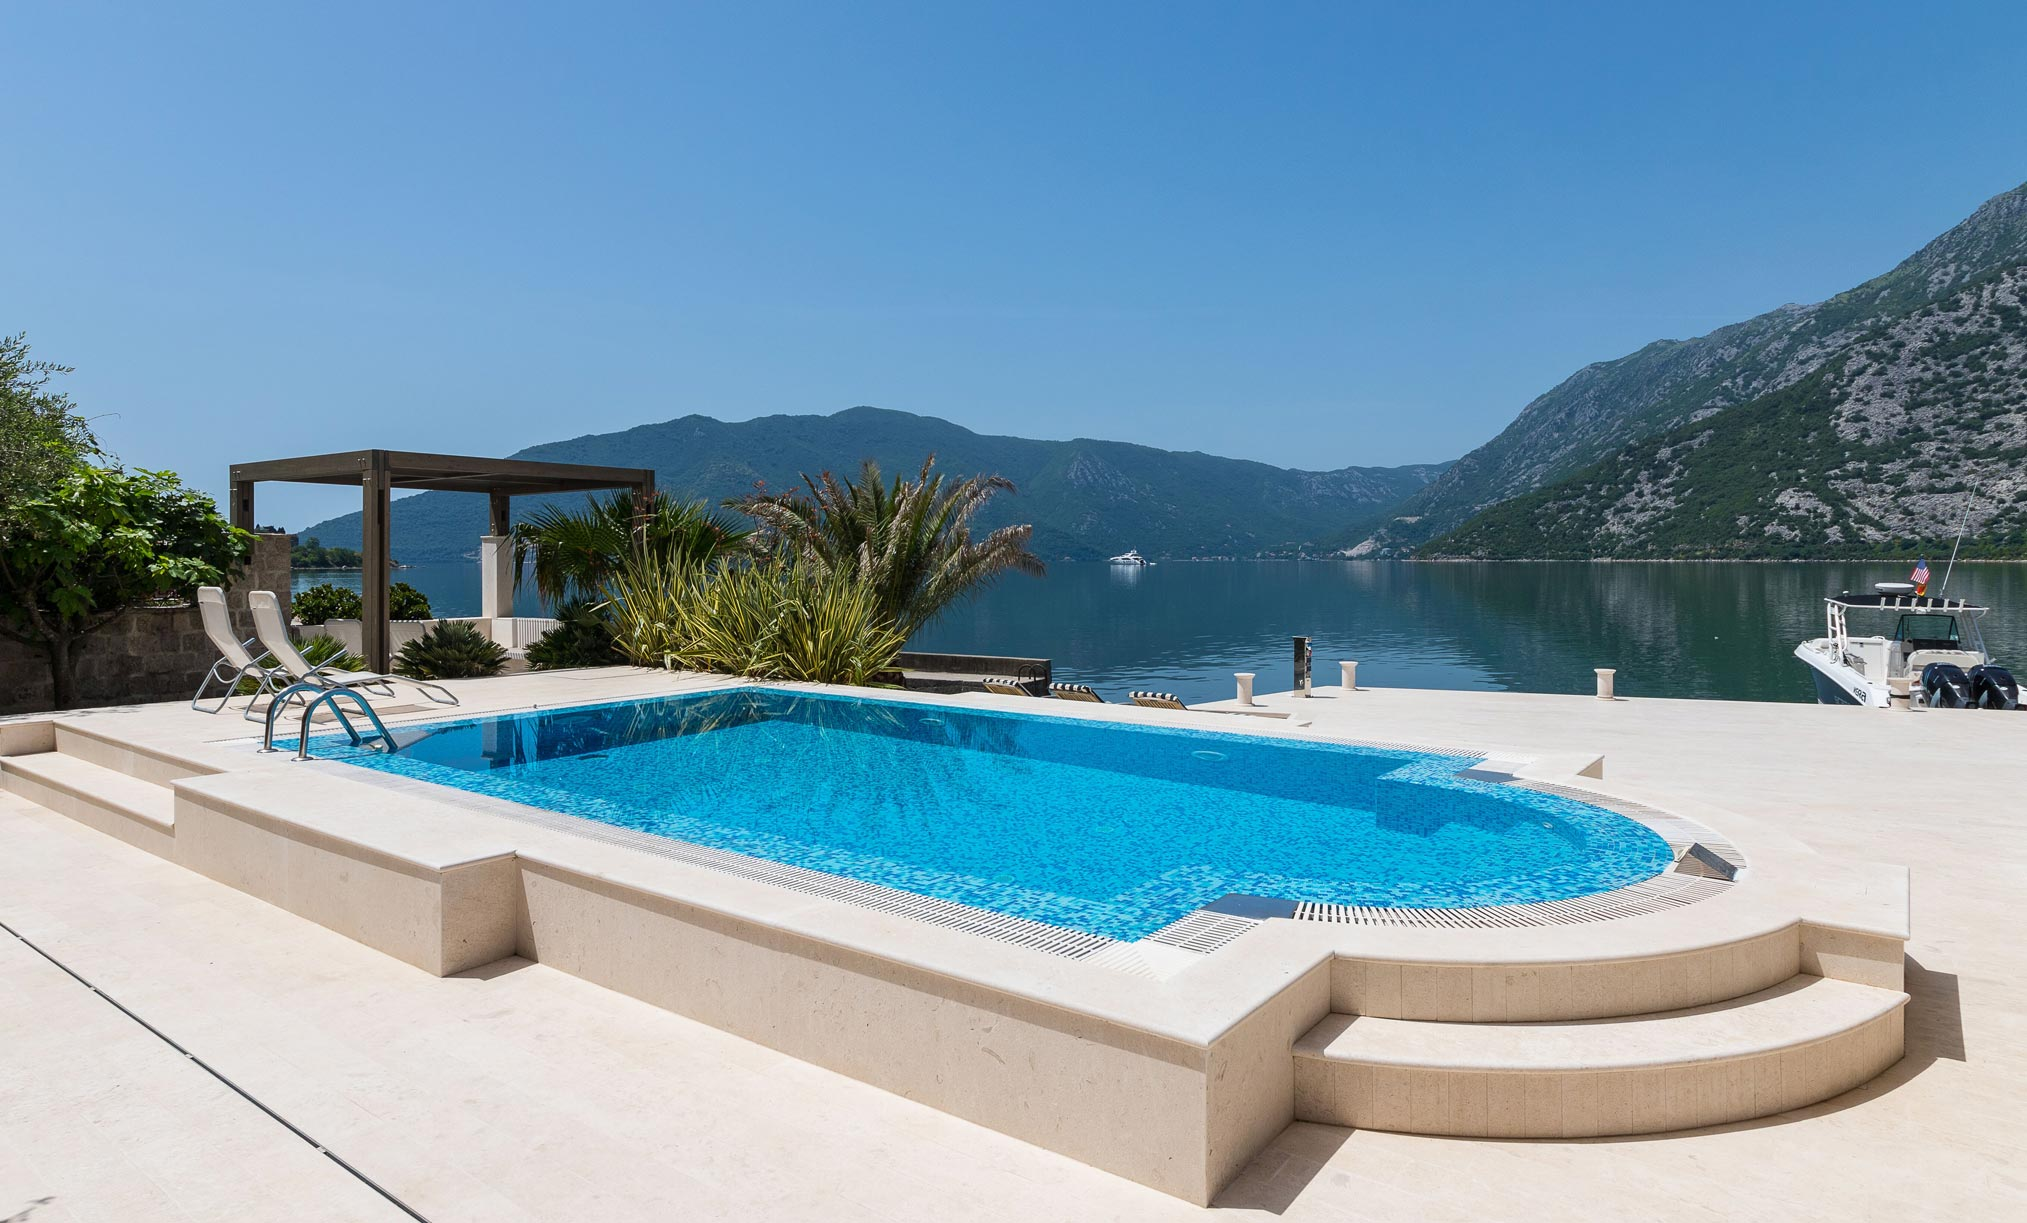 Luxury-waterfront-villa-with-swimming-pool-for-sale-in-Kotor (8).jpg